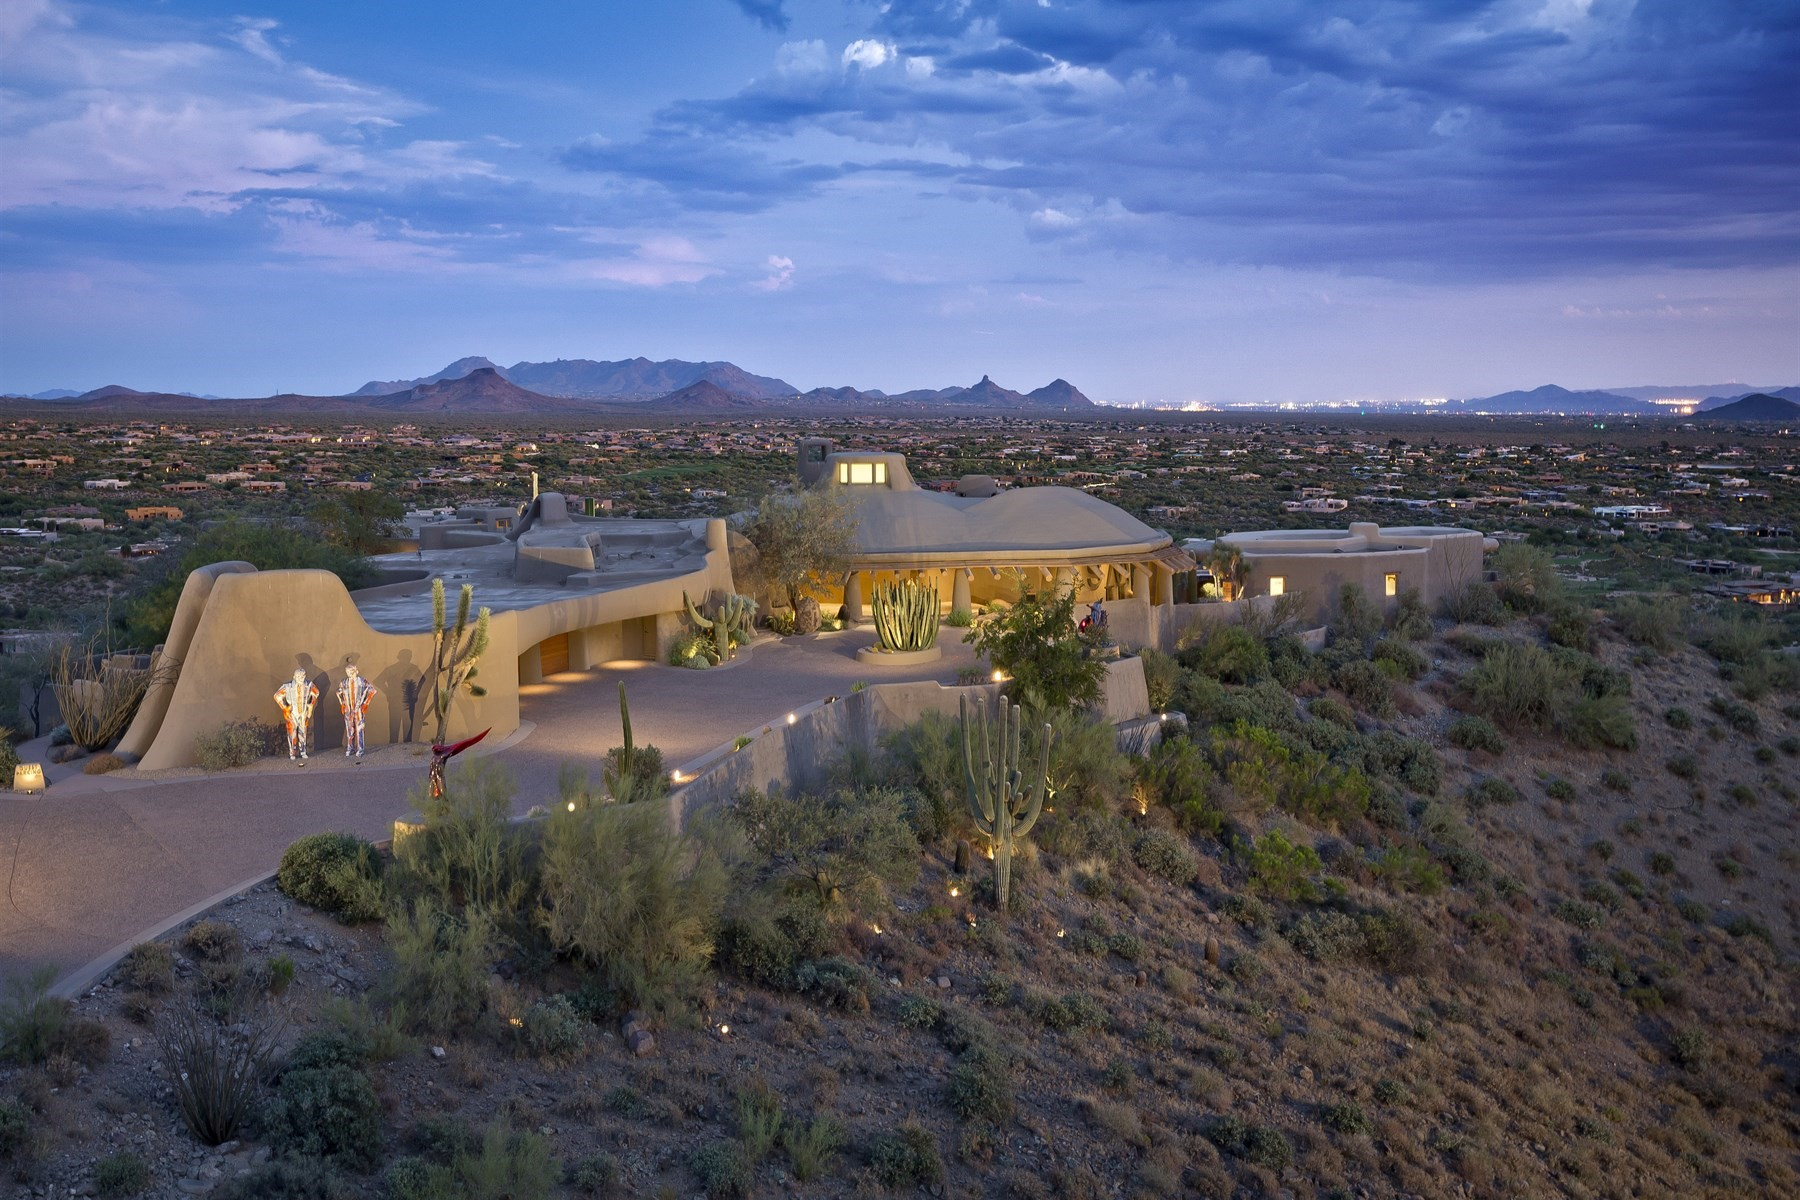 Maison unifamiliale pour l Vente à One-of-a-kind 15-acre estate that towers over the valley 39029 N Alister McKenzie Dr Scottsdale, Arizona, 85262 États-Unis